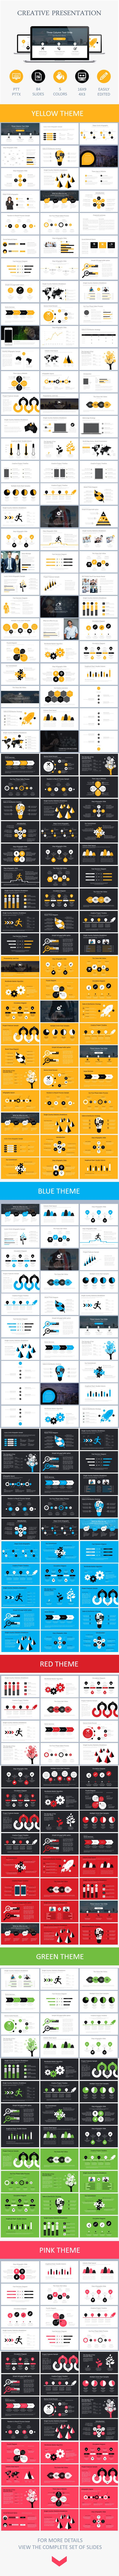 #powerpoint #design #GraphicDesign #presentation #PresentationDesign #PowerpointDesign #layout